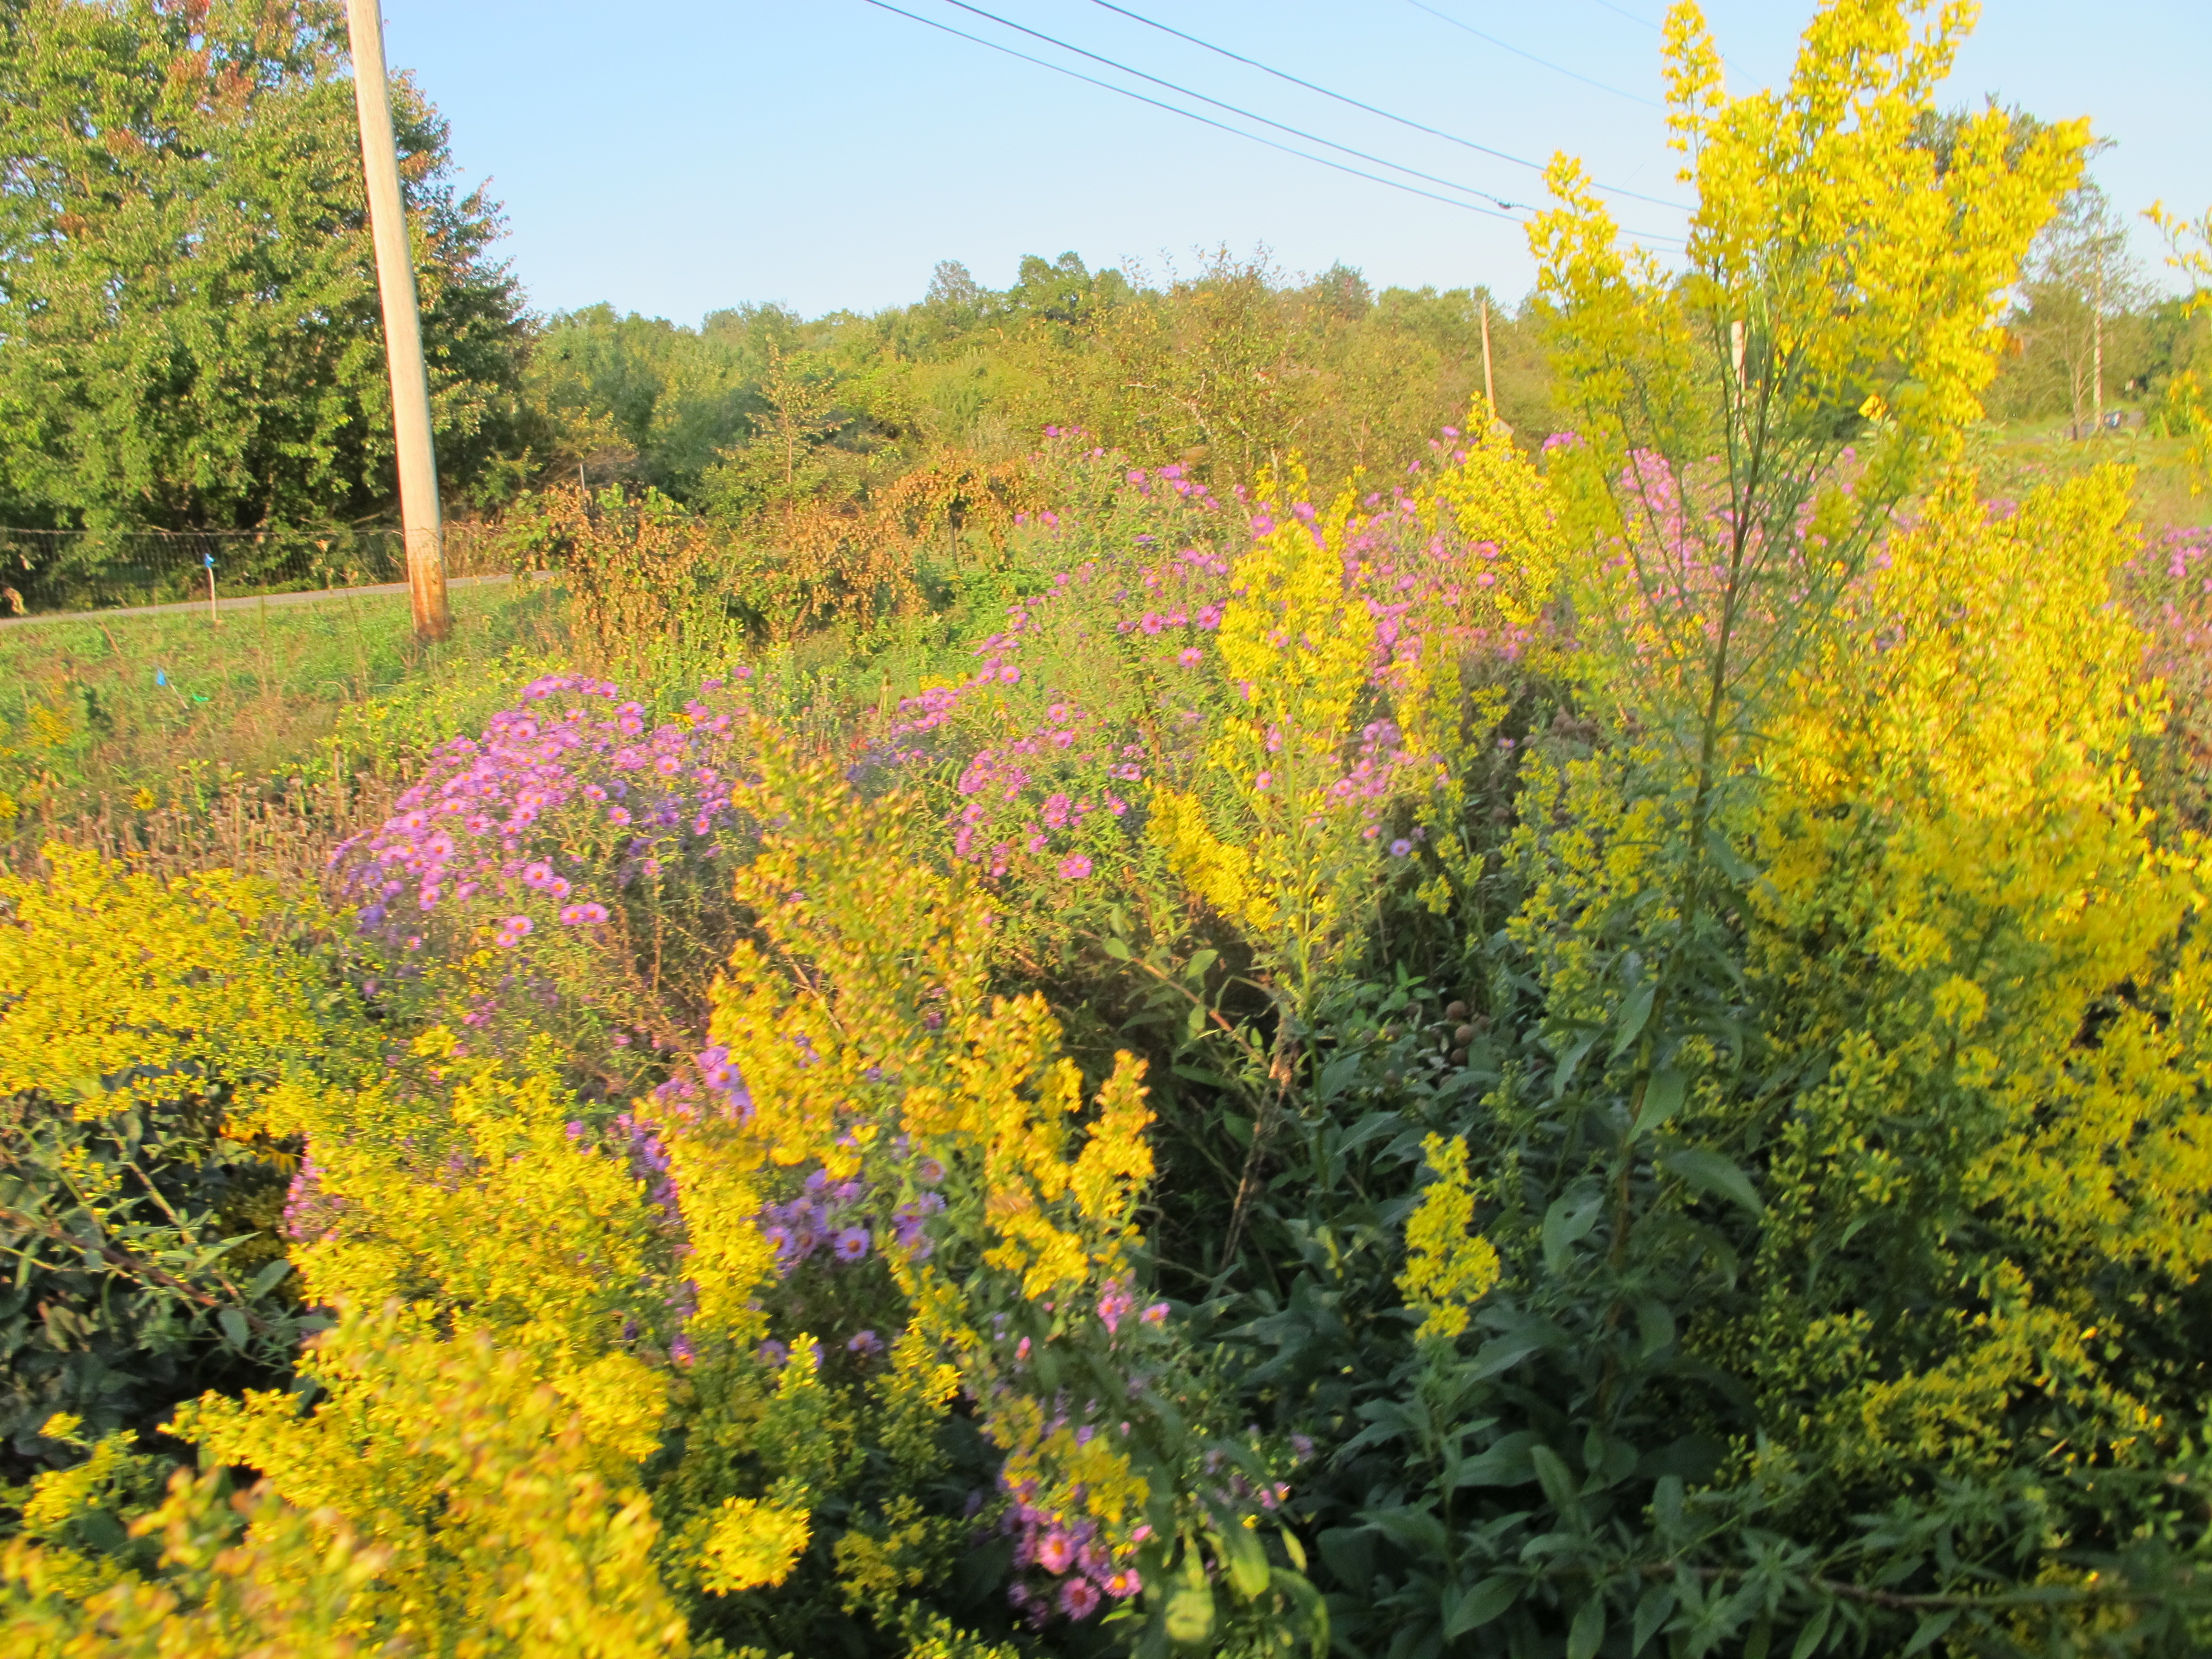 golden yellow and purple flowers